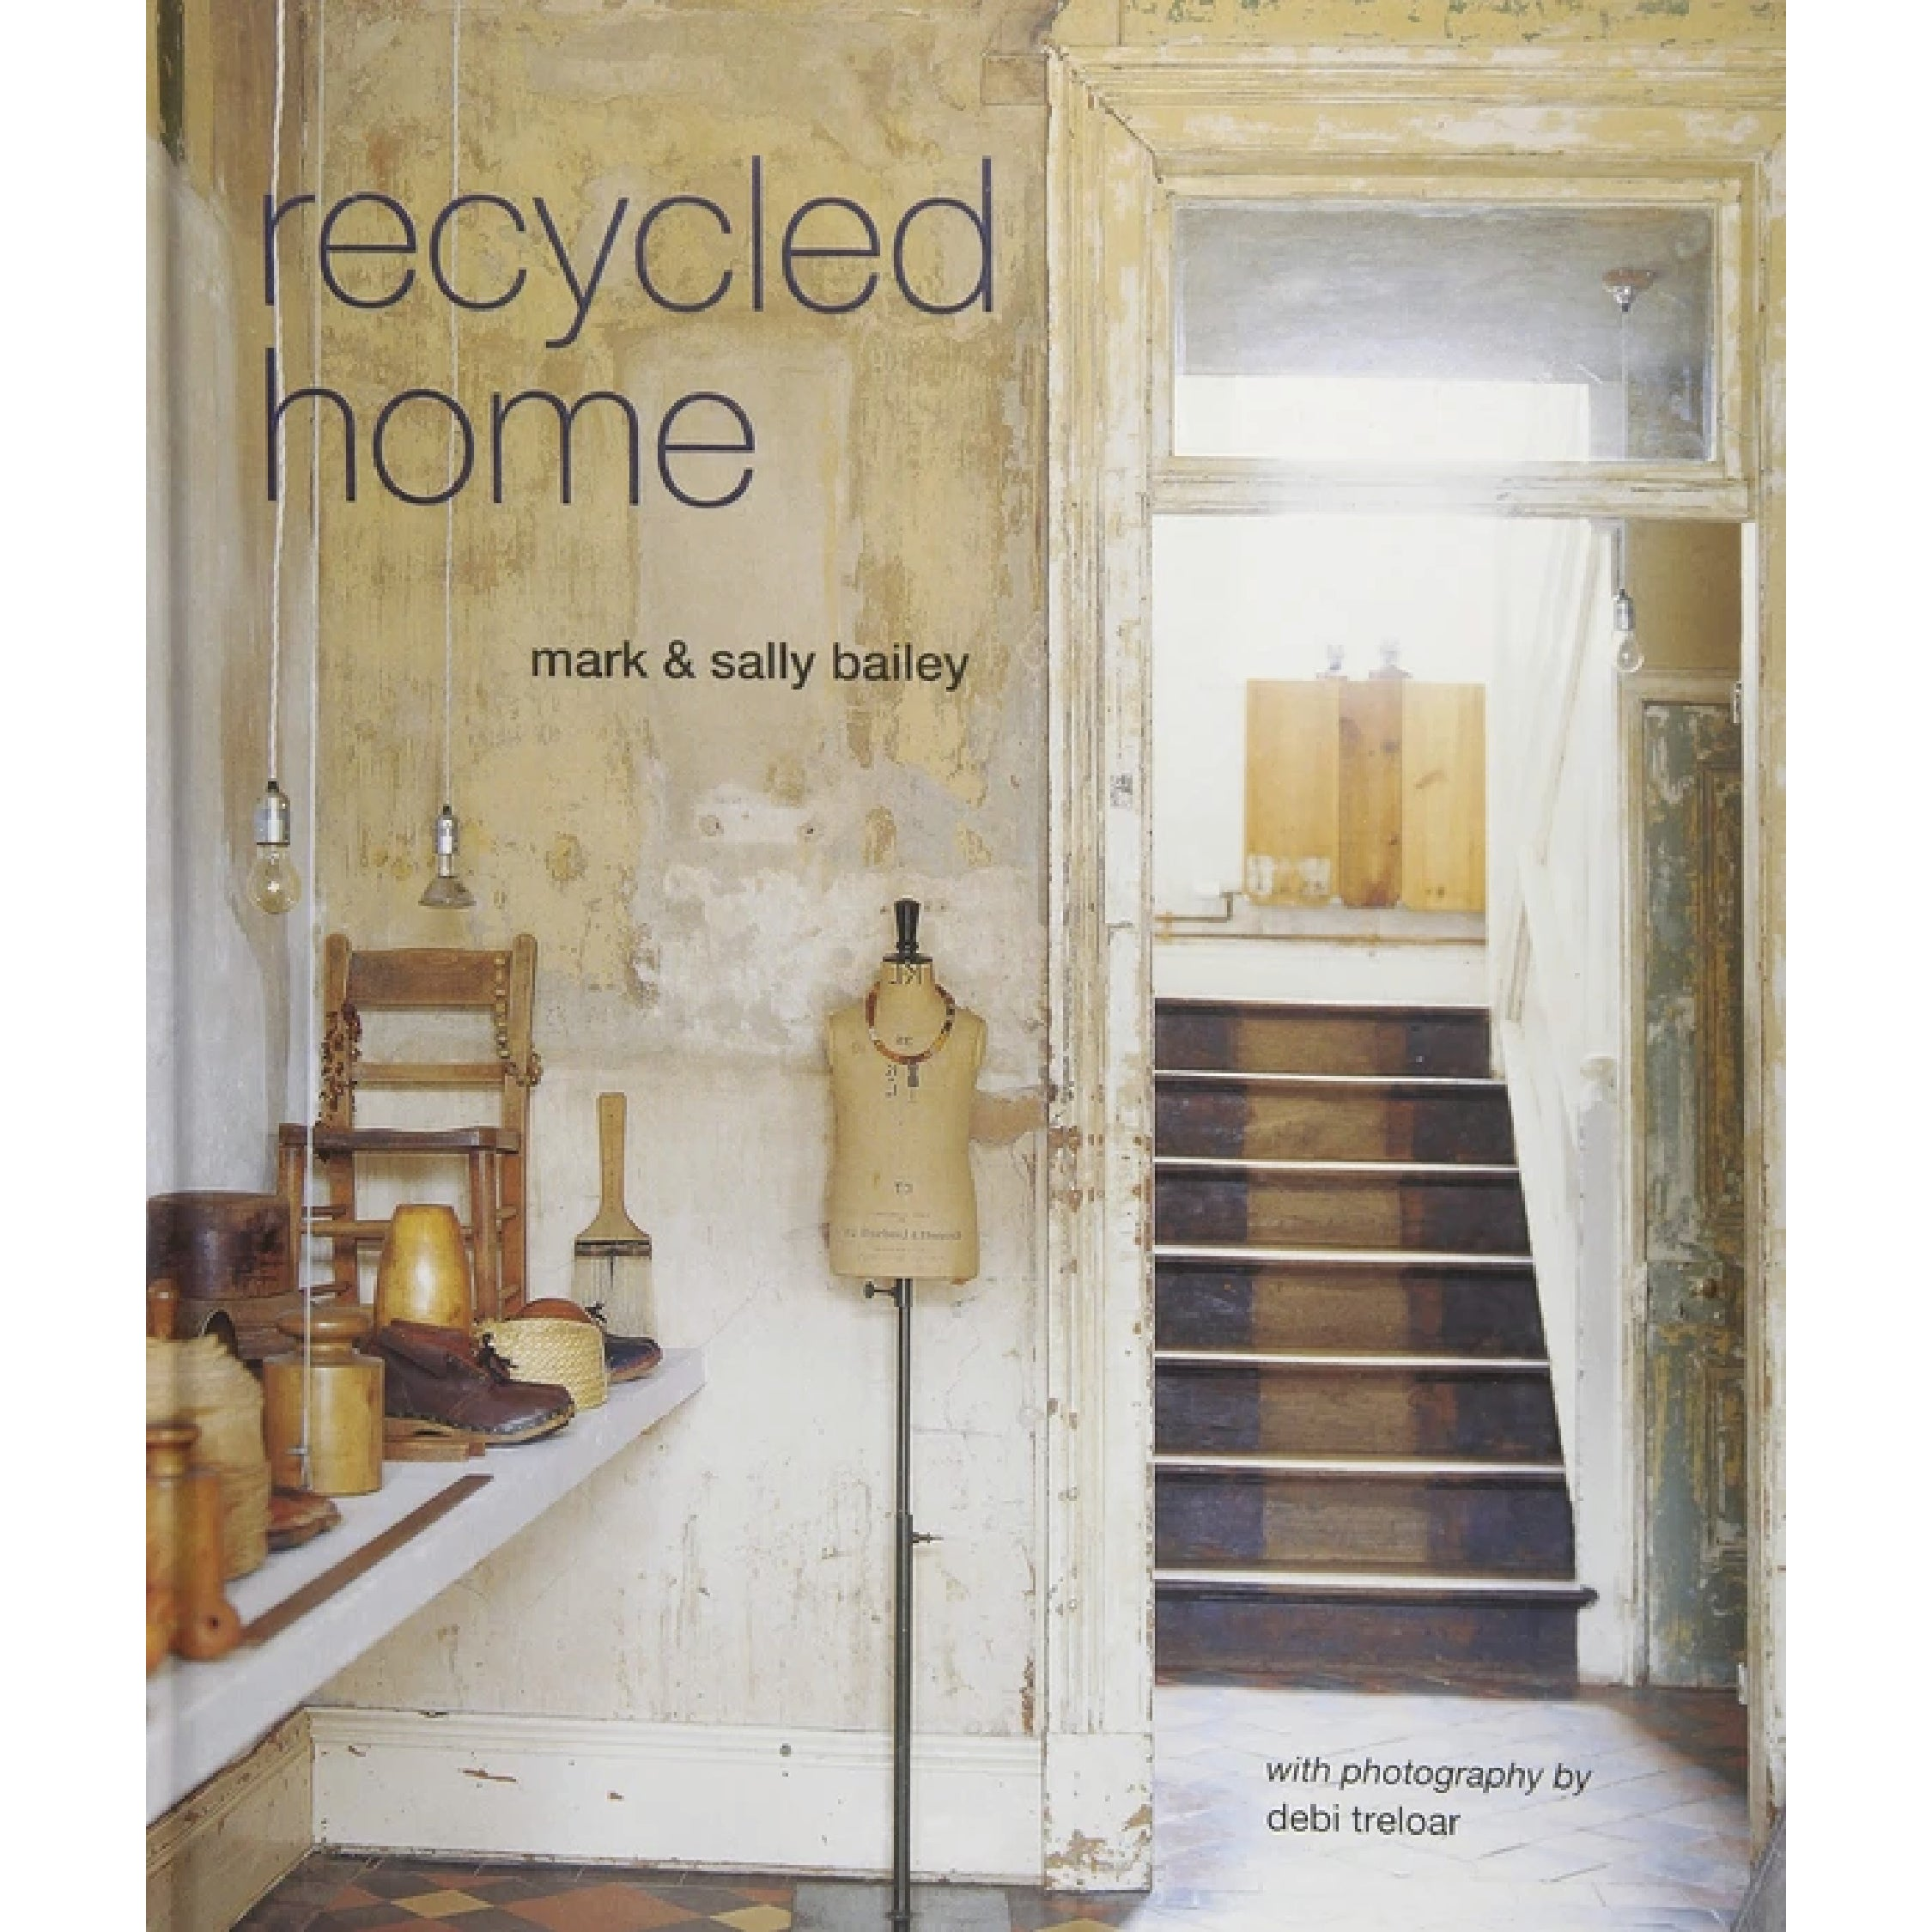 Recycled Home - Mark & Sally Bailey